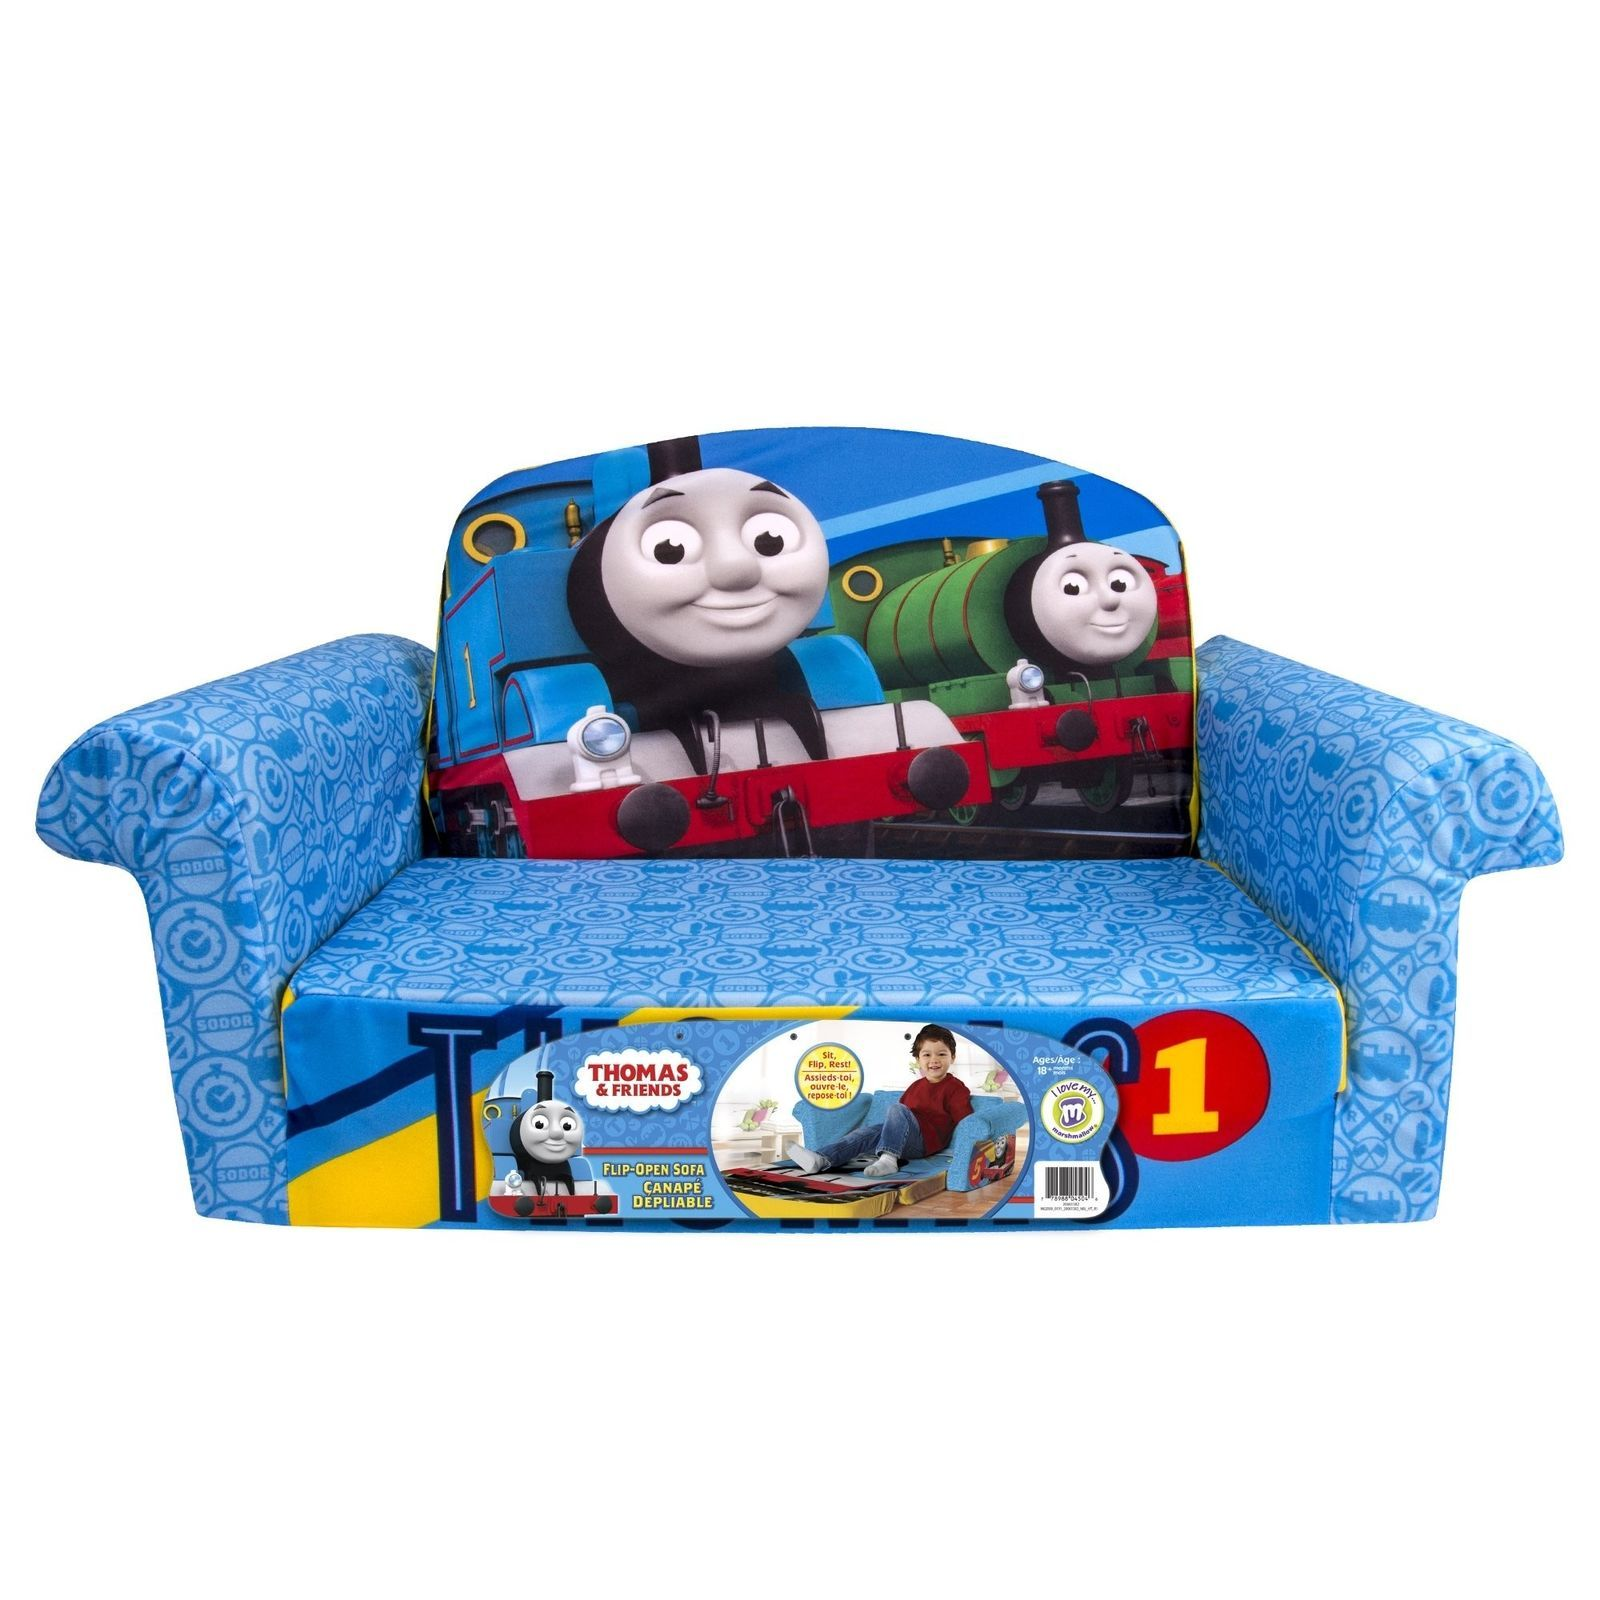 Kids Sofa Bed Chair Thomas the Tank Engine Go Go Open Longer Couch